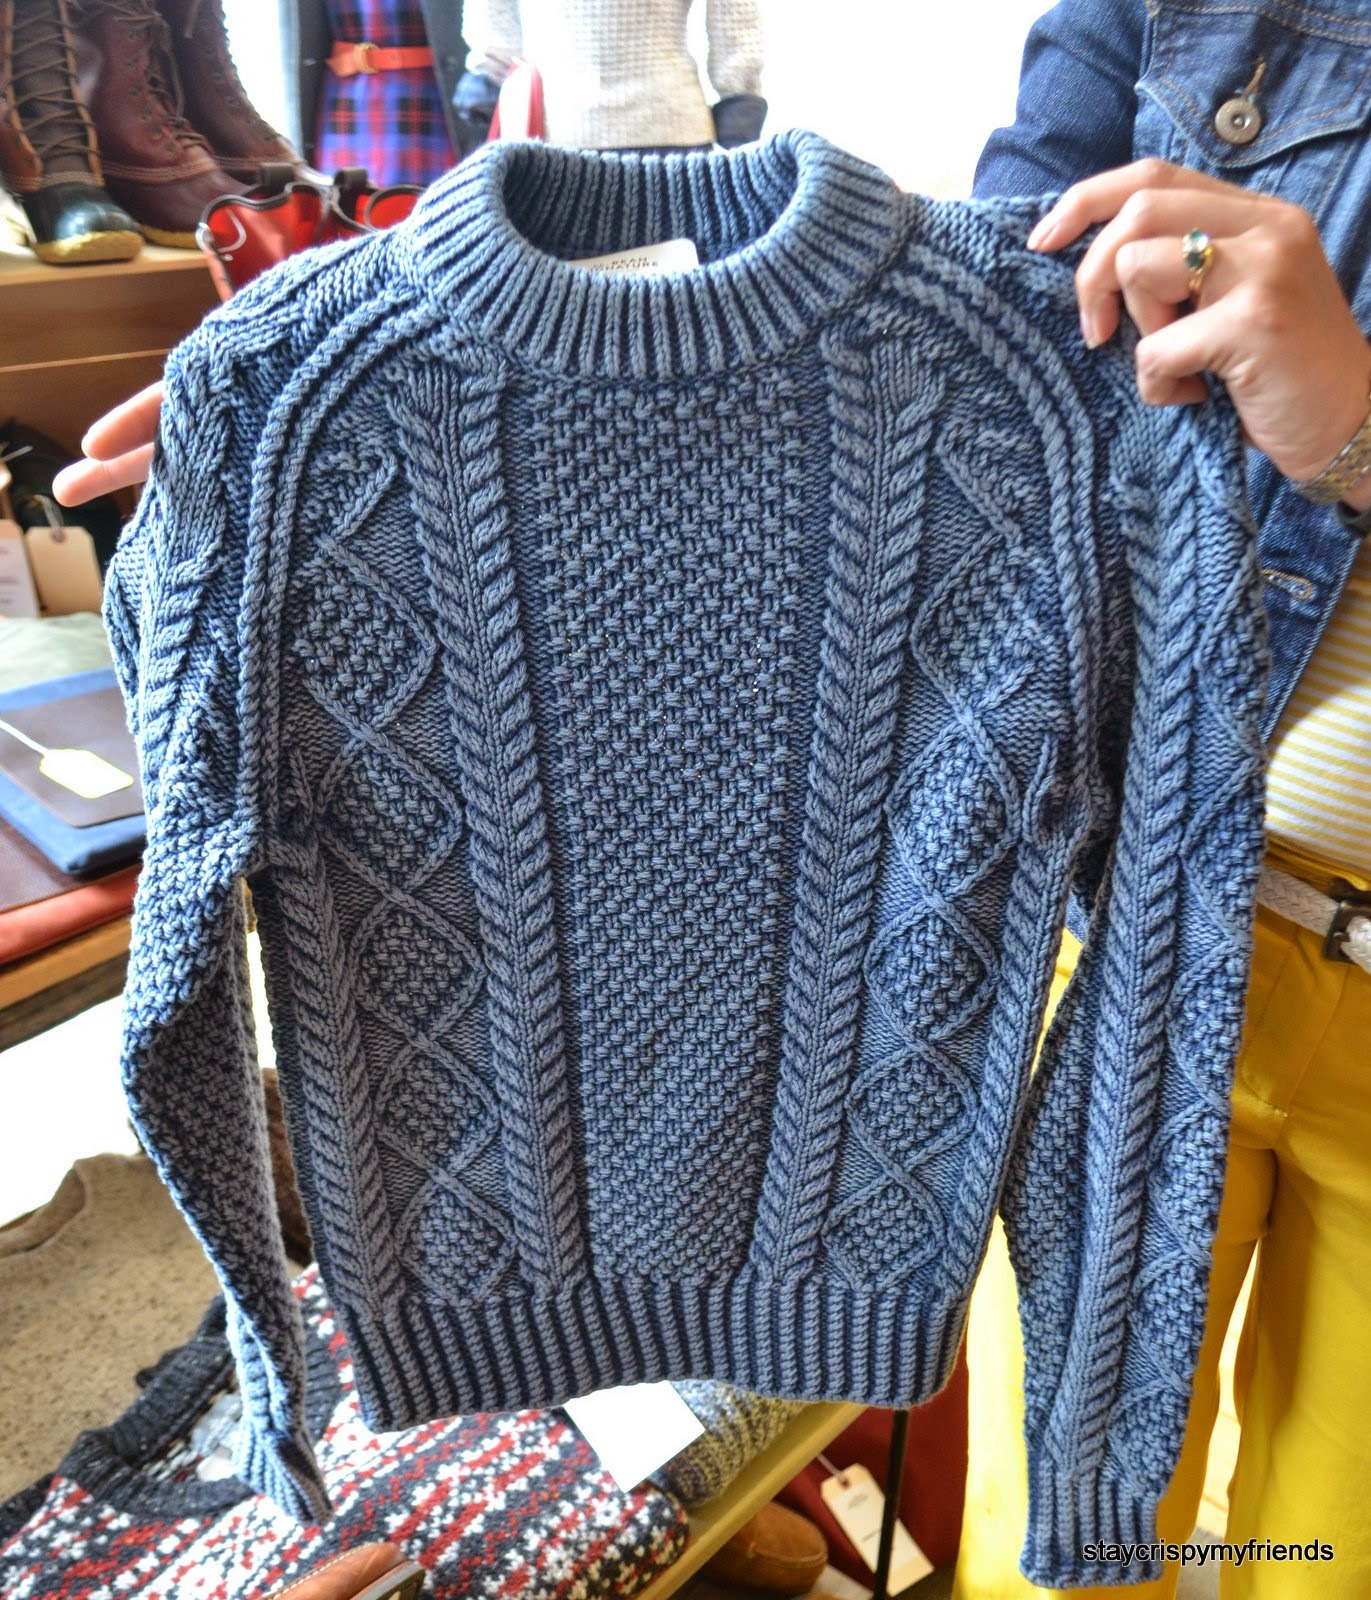 LL Bean Signature Rollneck Sweater